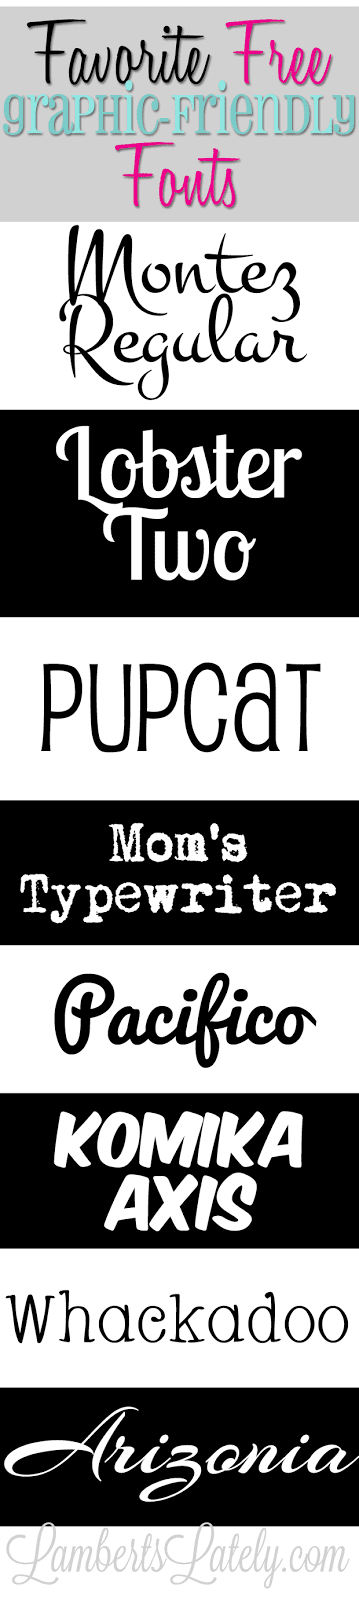 Lots of great graphic-friendly, free, commercial fonts!